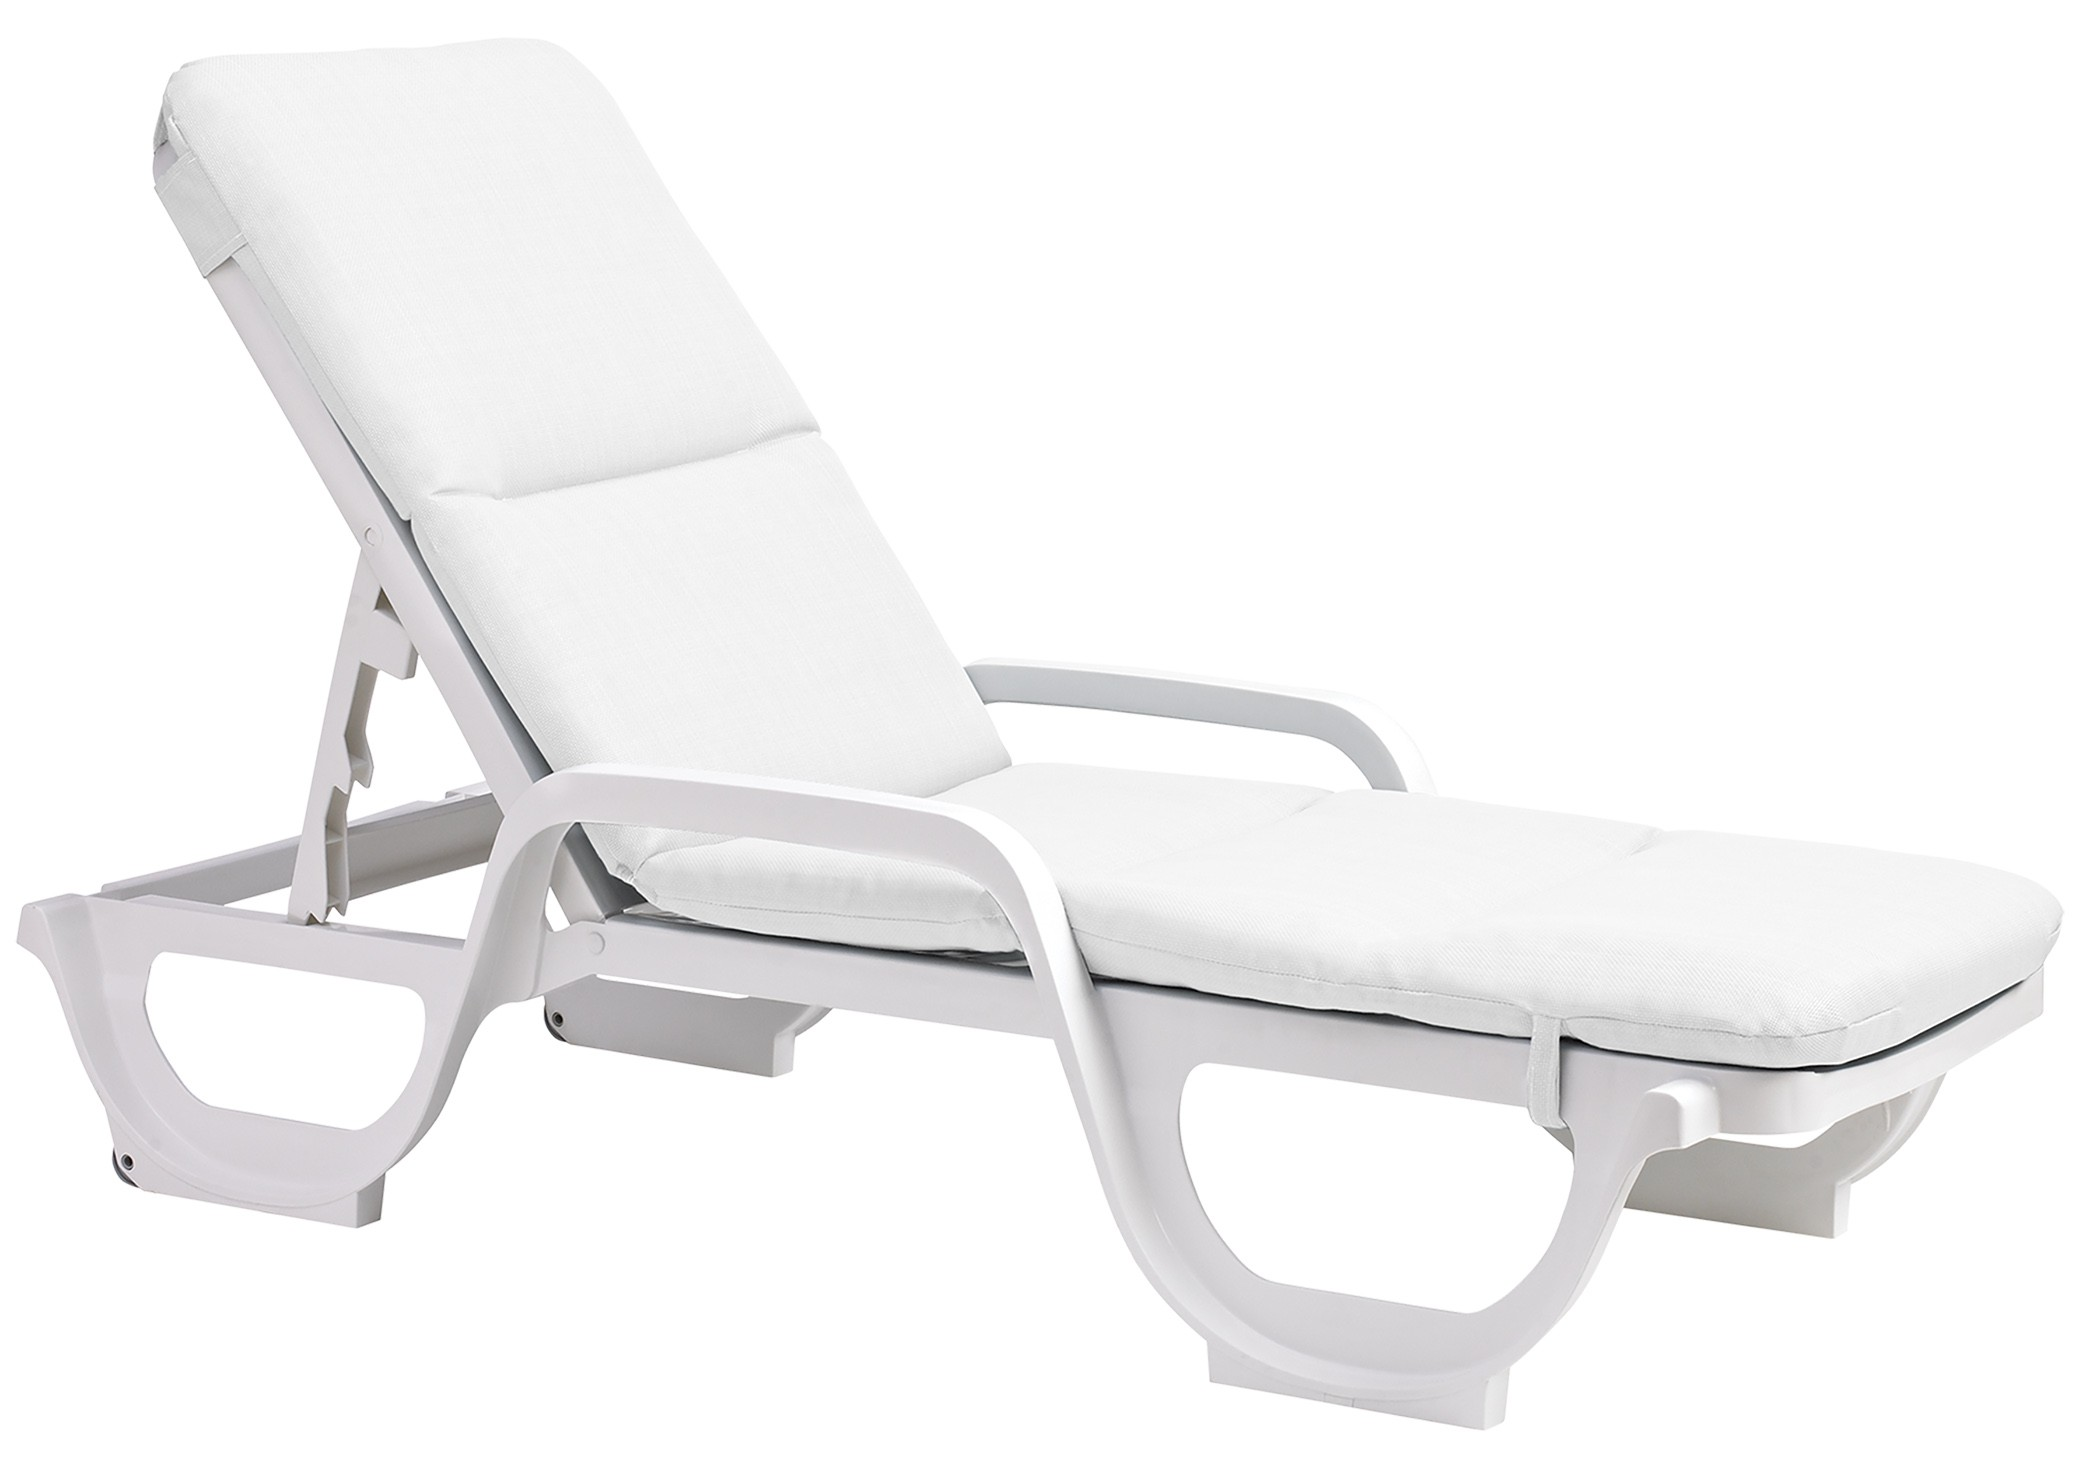 Bahia Chaise Lounge Amp Cushion Commercial Outdoor